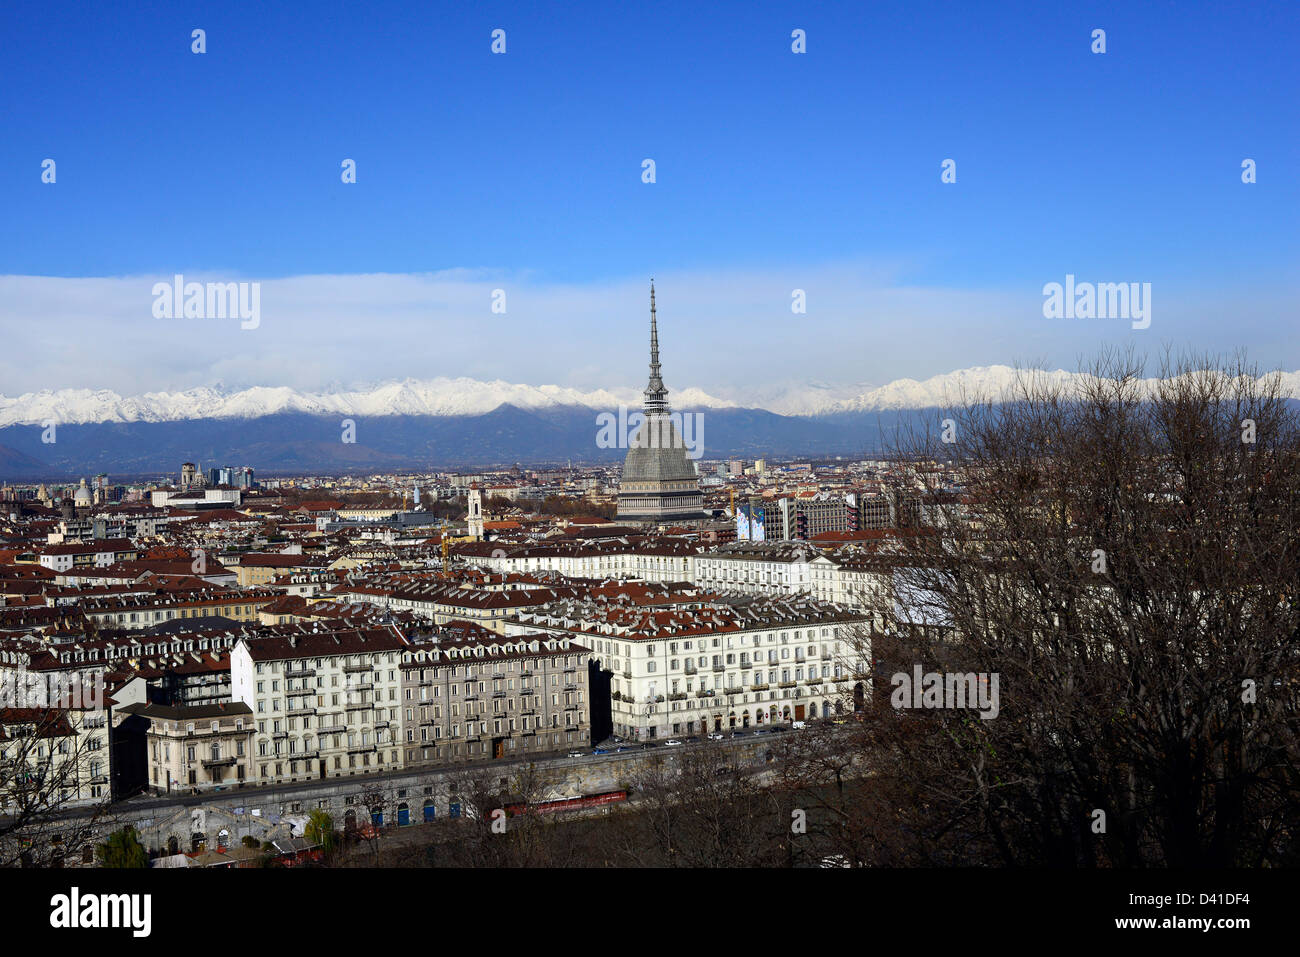 The city of Turin with the Italian Alps in the background. - Stock Image